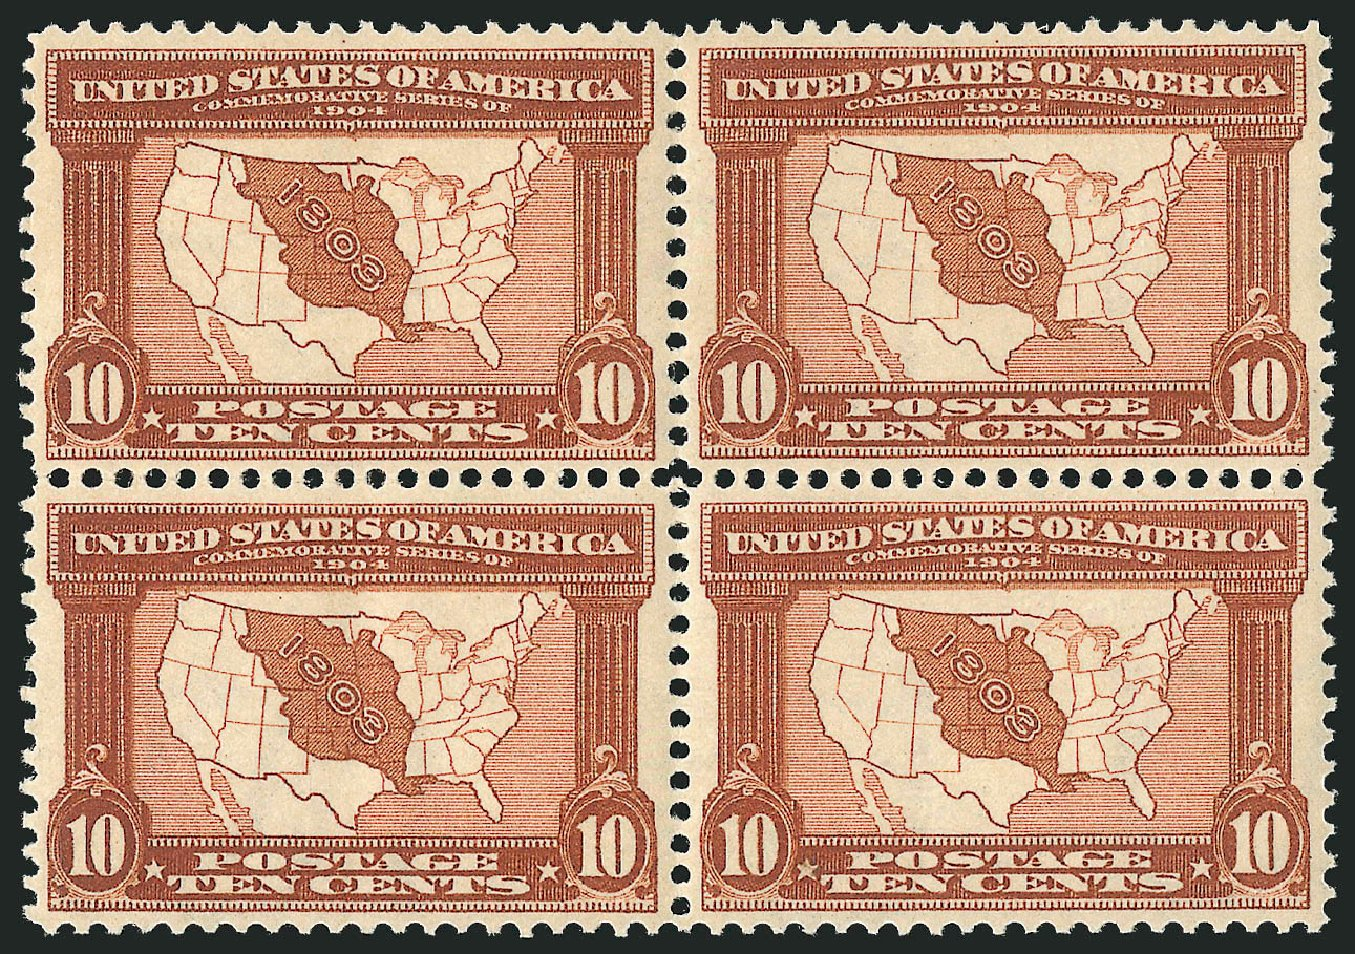 Price of US Stamps Scott Catalog #327 - 1904 10c Louisiana Purchase Exposition. Robert Siegel Auction Galleries, Sep 2014, Sale 1078, Lot 459